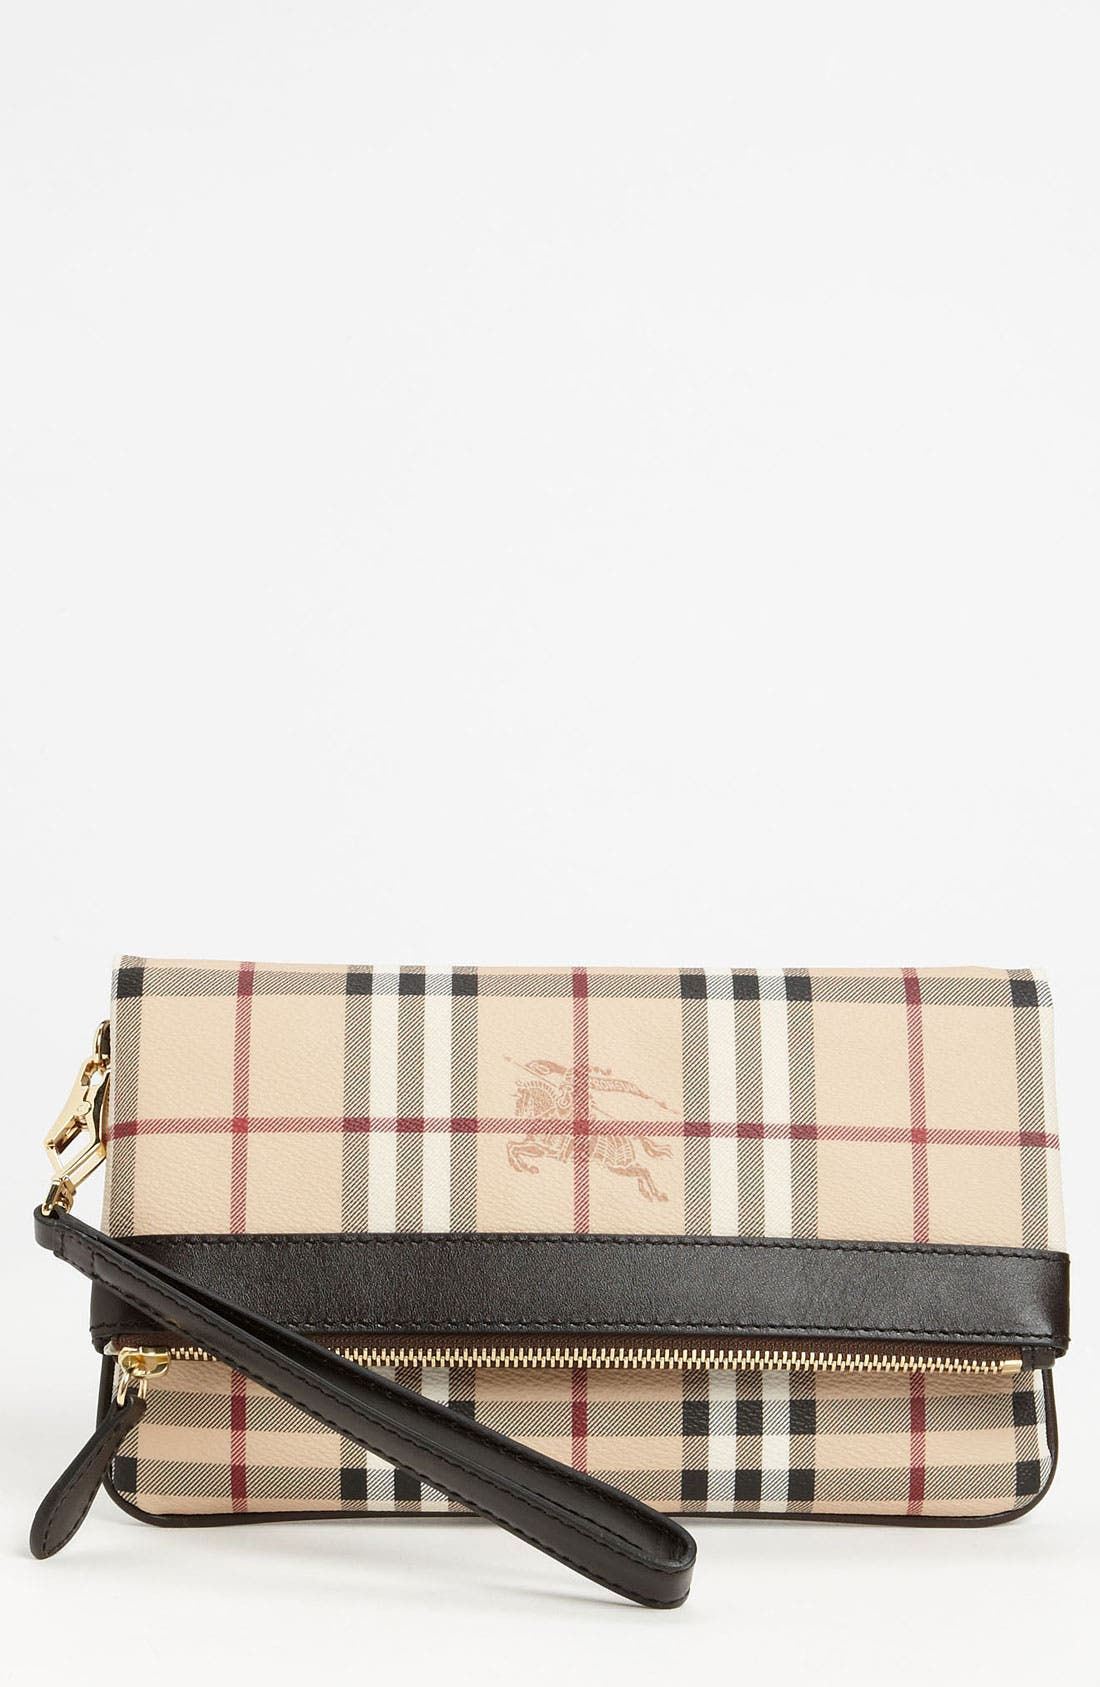 Alternate Image 1 Selected - Burberry 'Haymarket Check' Wristlet